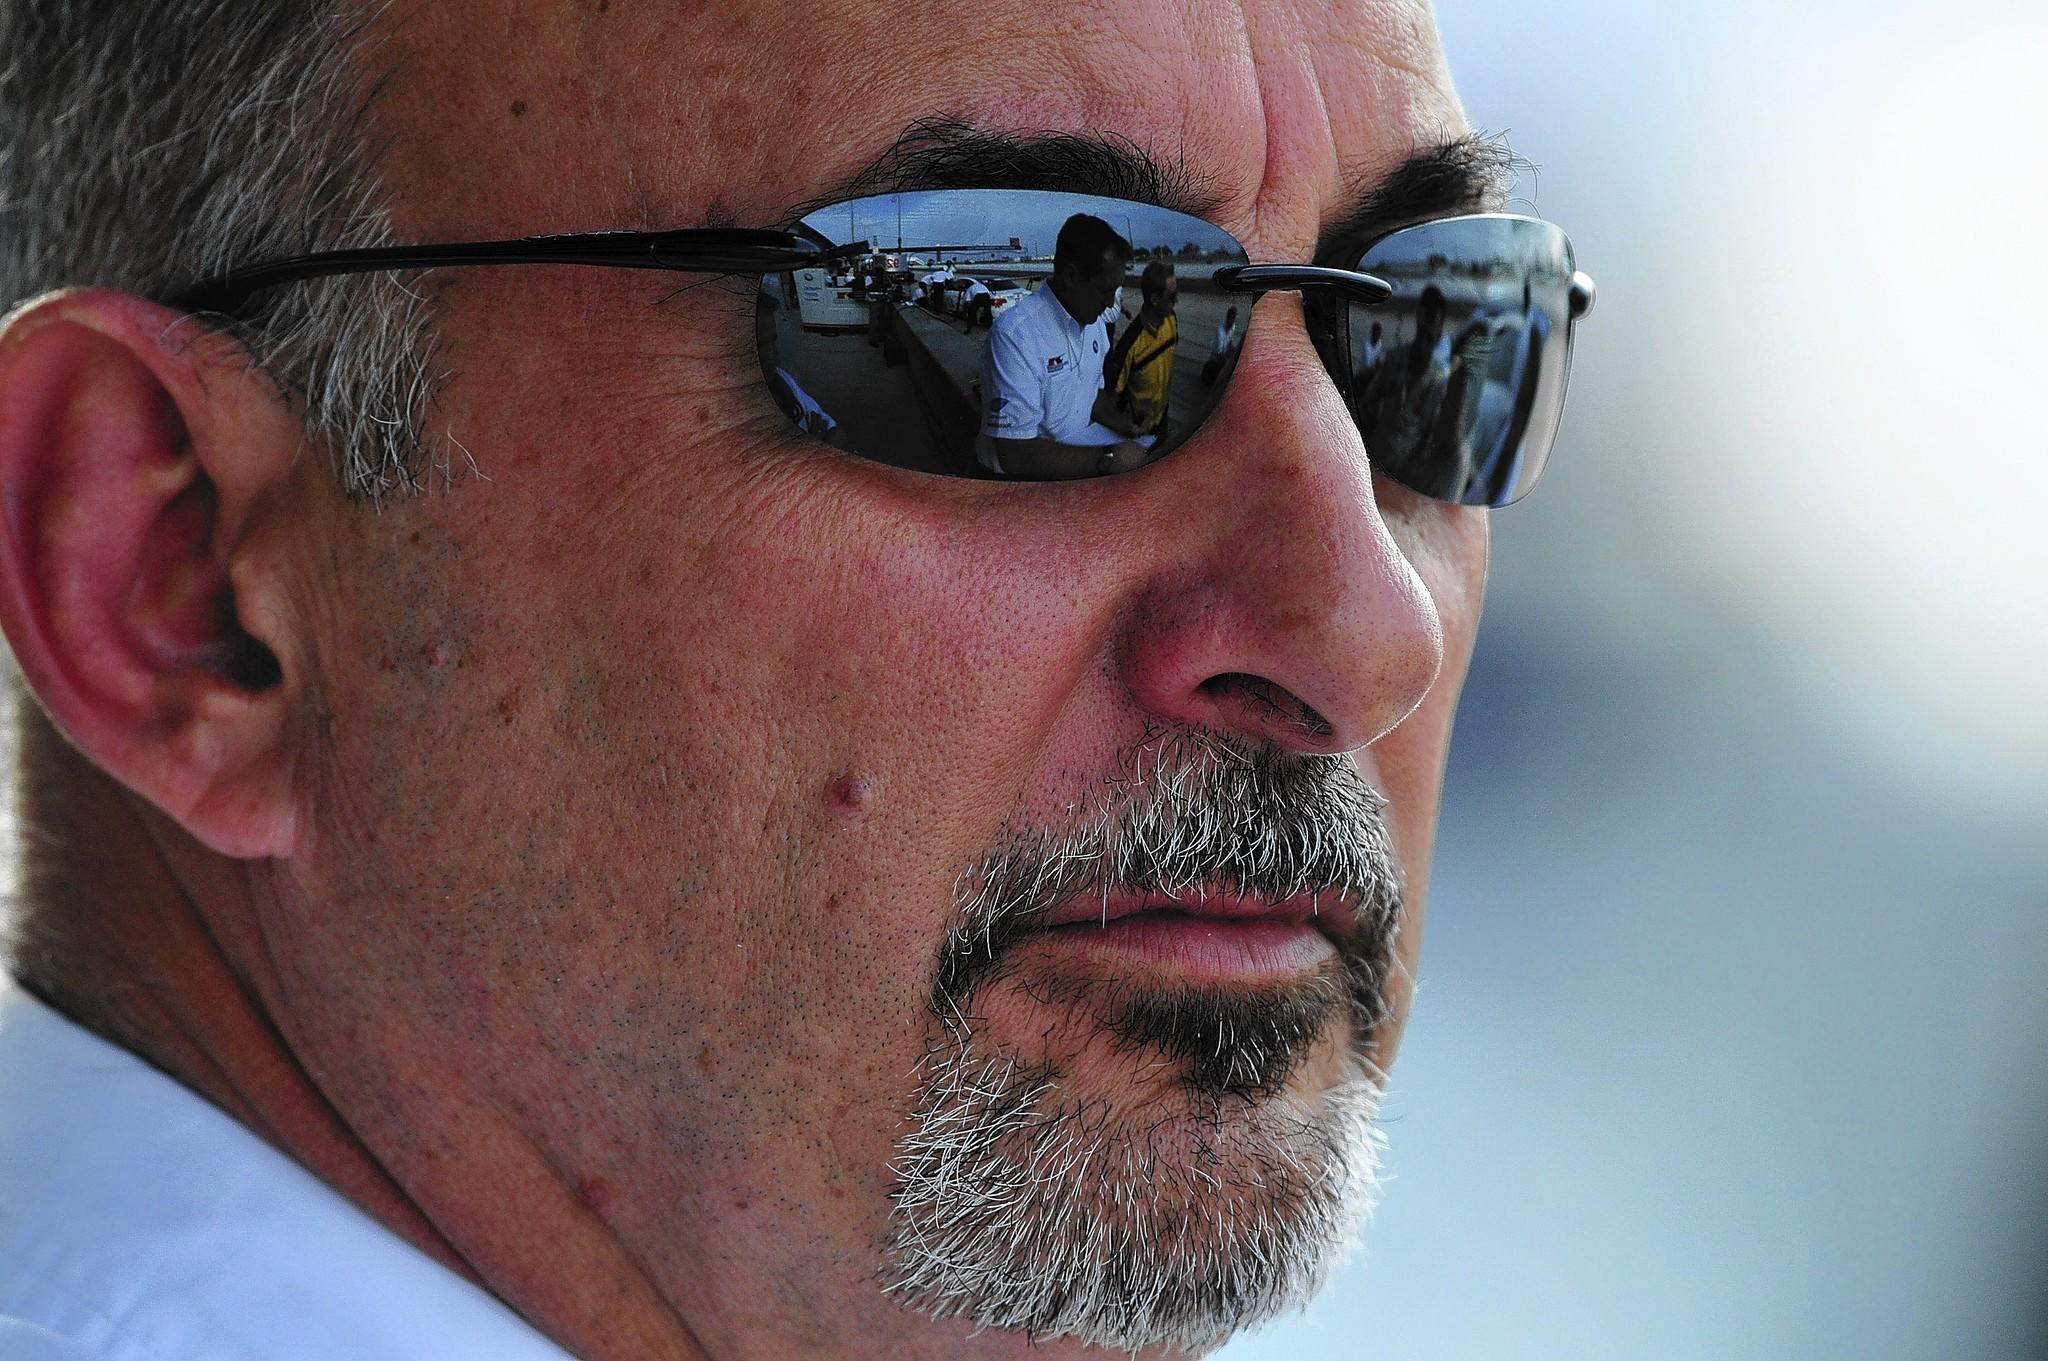 Chicagoan and Indianapolis 500 winner Bobby Rahal, 61, is raising money for his Rahal Letterman Lanigan IndyCar team, as well as for the USA Bobsled & Skeleton Foundation, of which he is chairman.